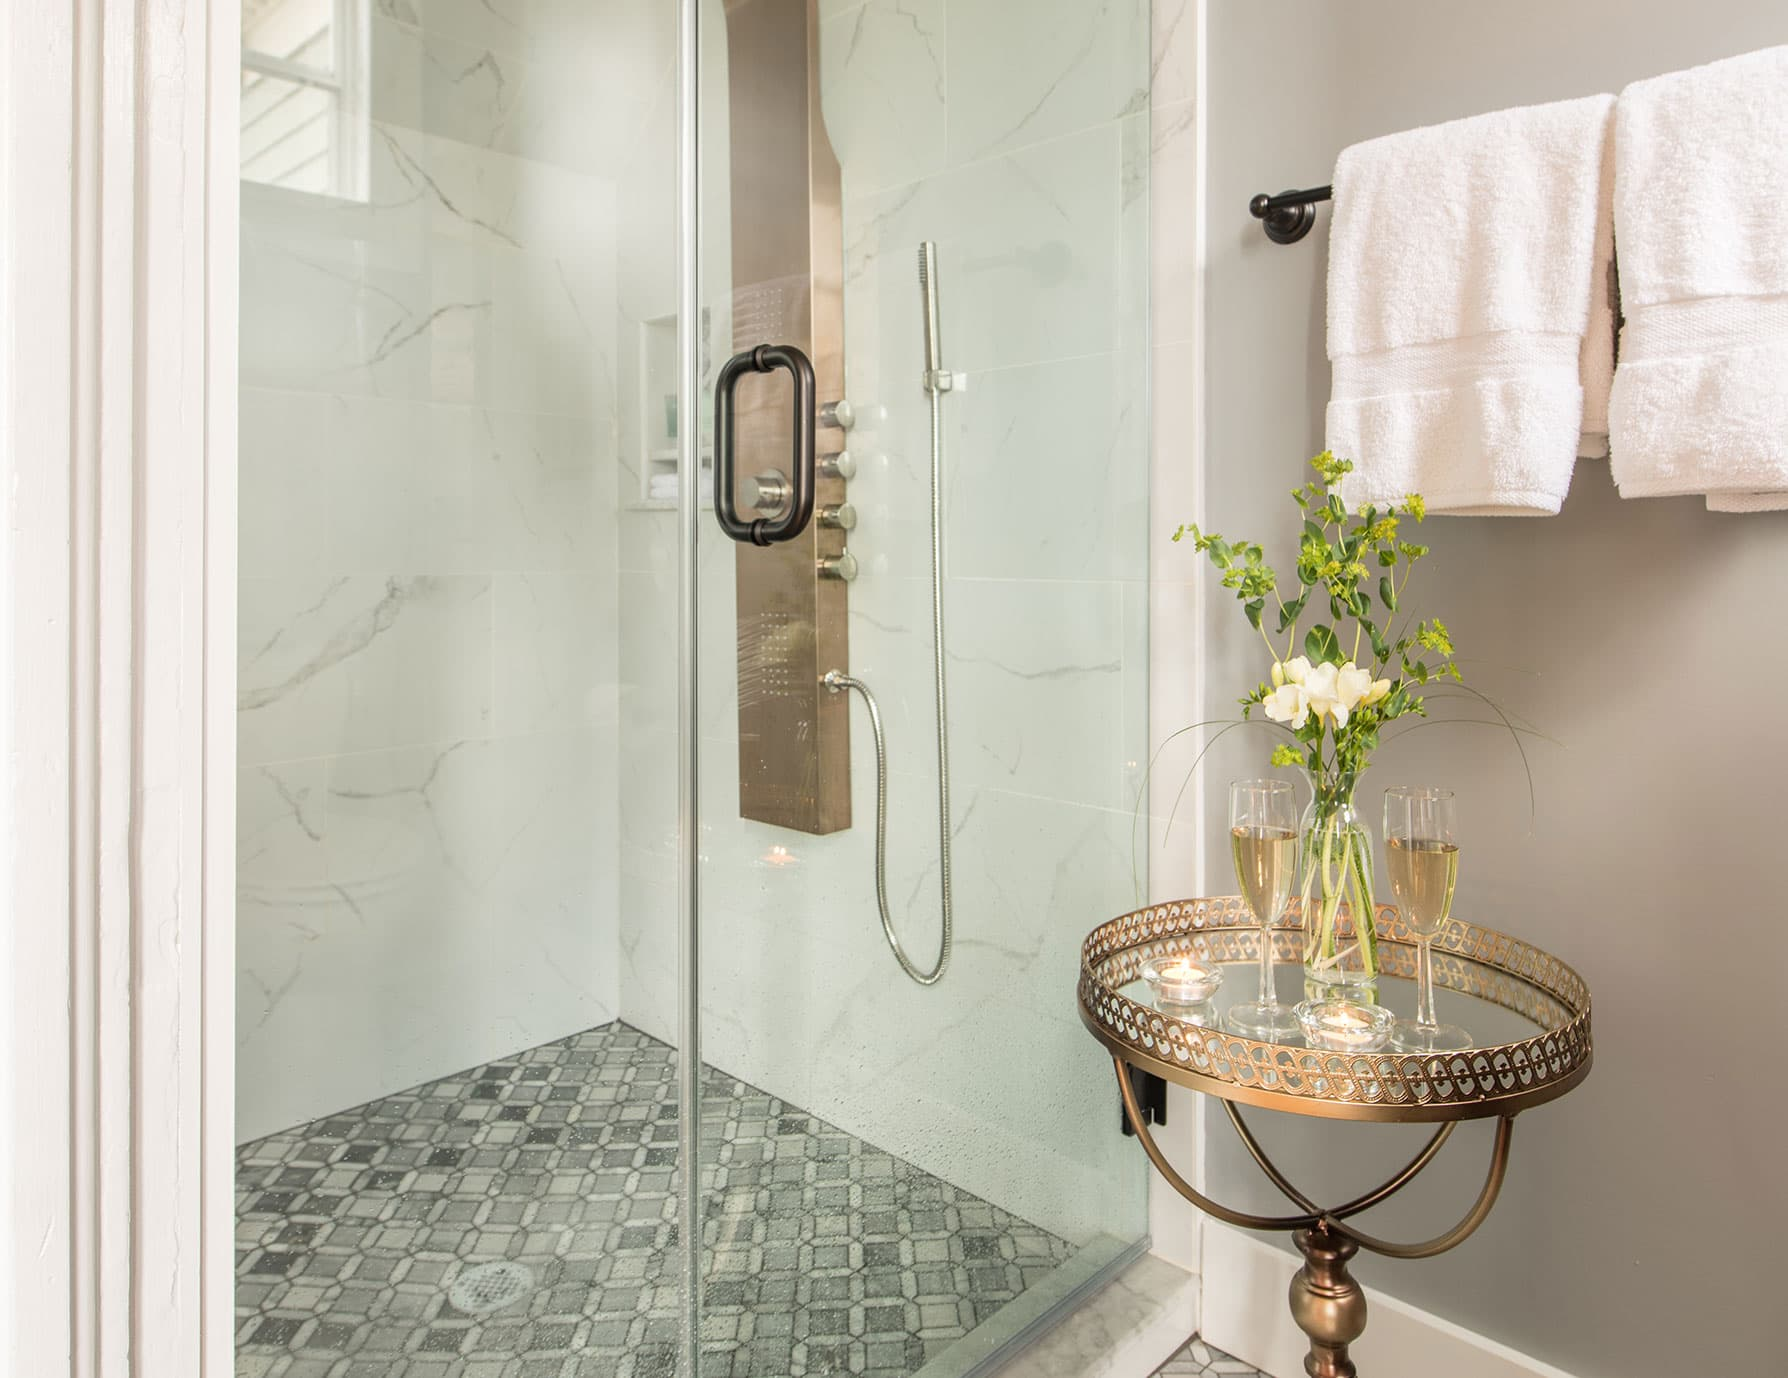 Luxurious Grand Dream Shower in the Summer's Suite